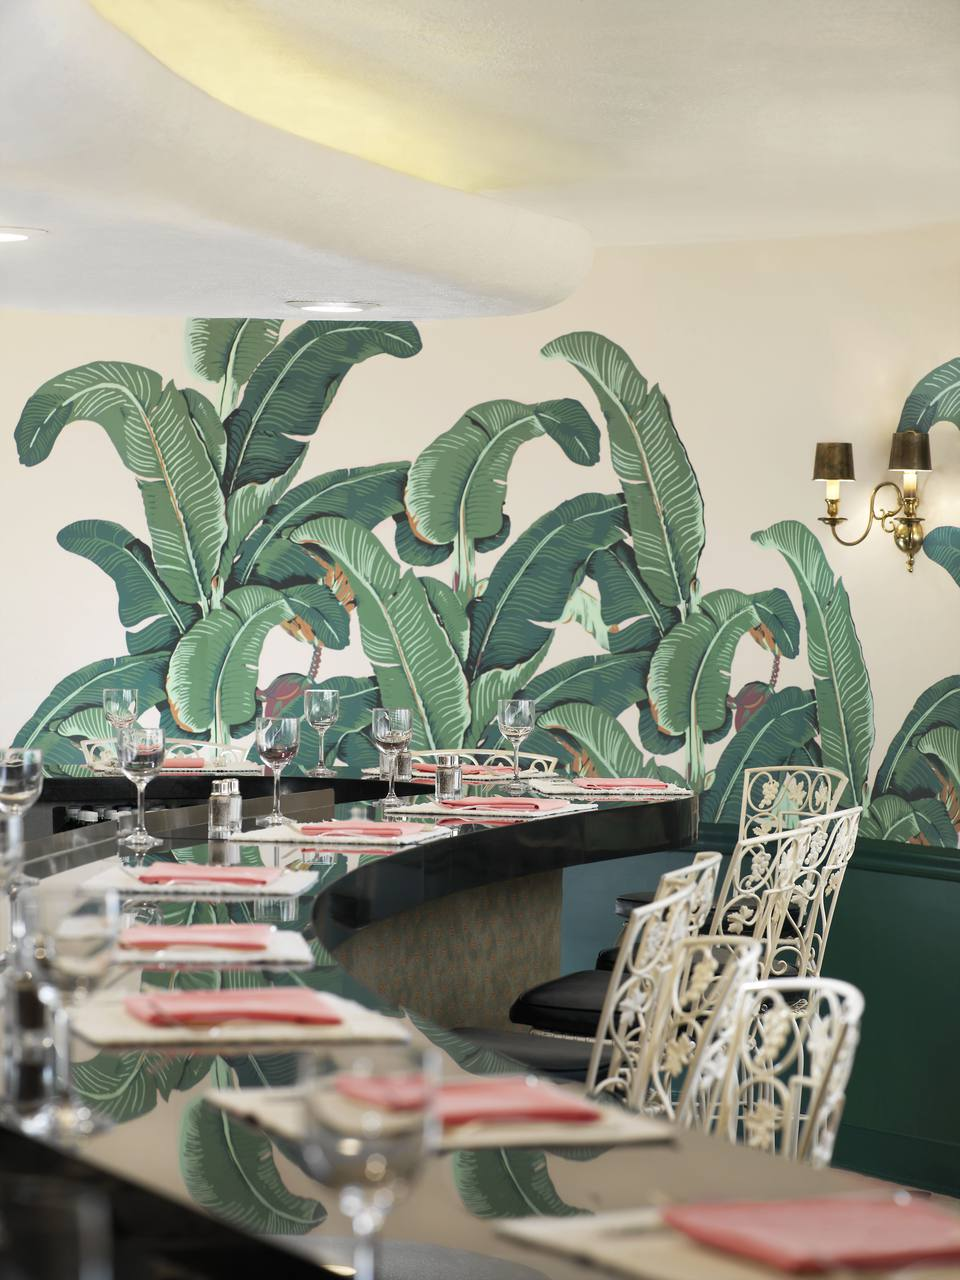 Astounding 10 Ways To Decorate With The Banana Leaf Trend Machost Co Dining Chair Design Ideas Machostcouk